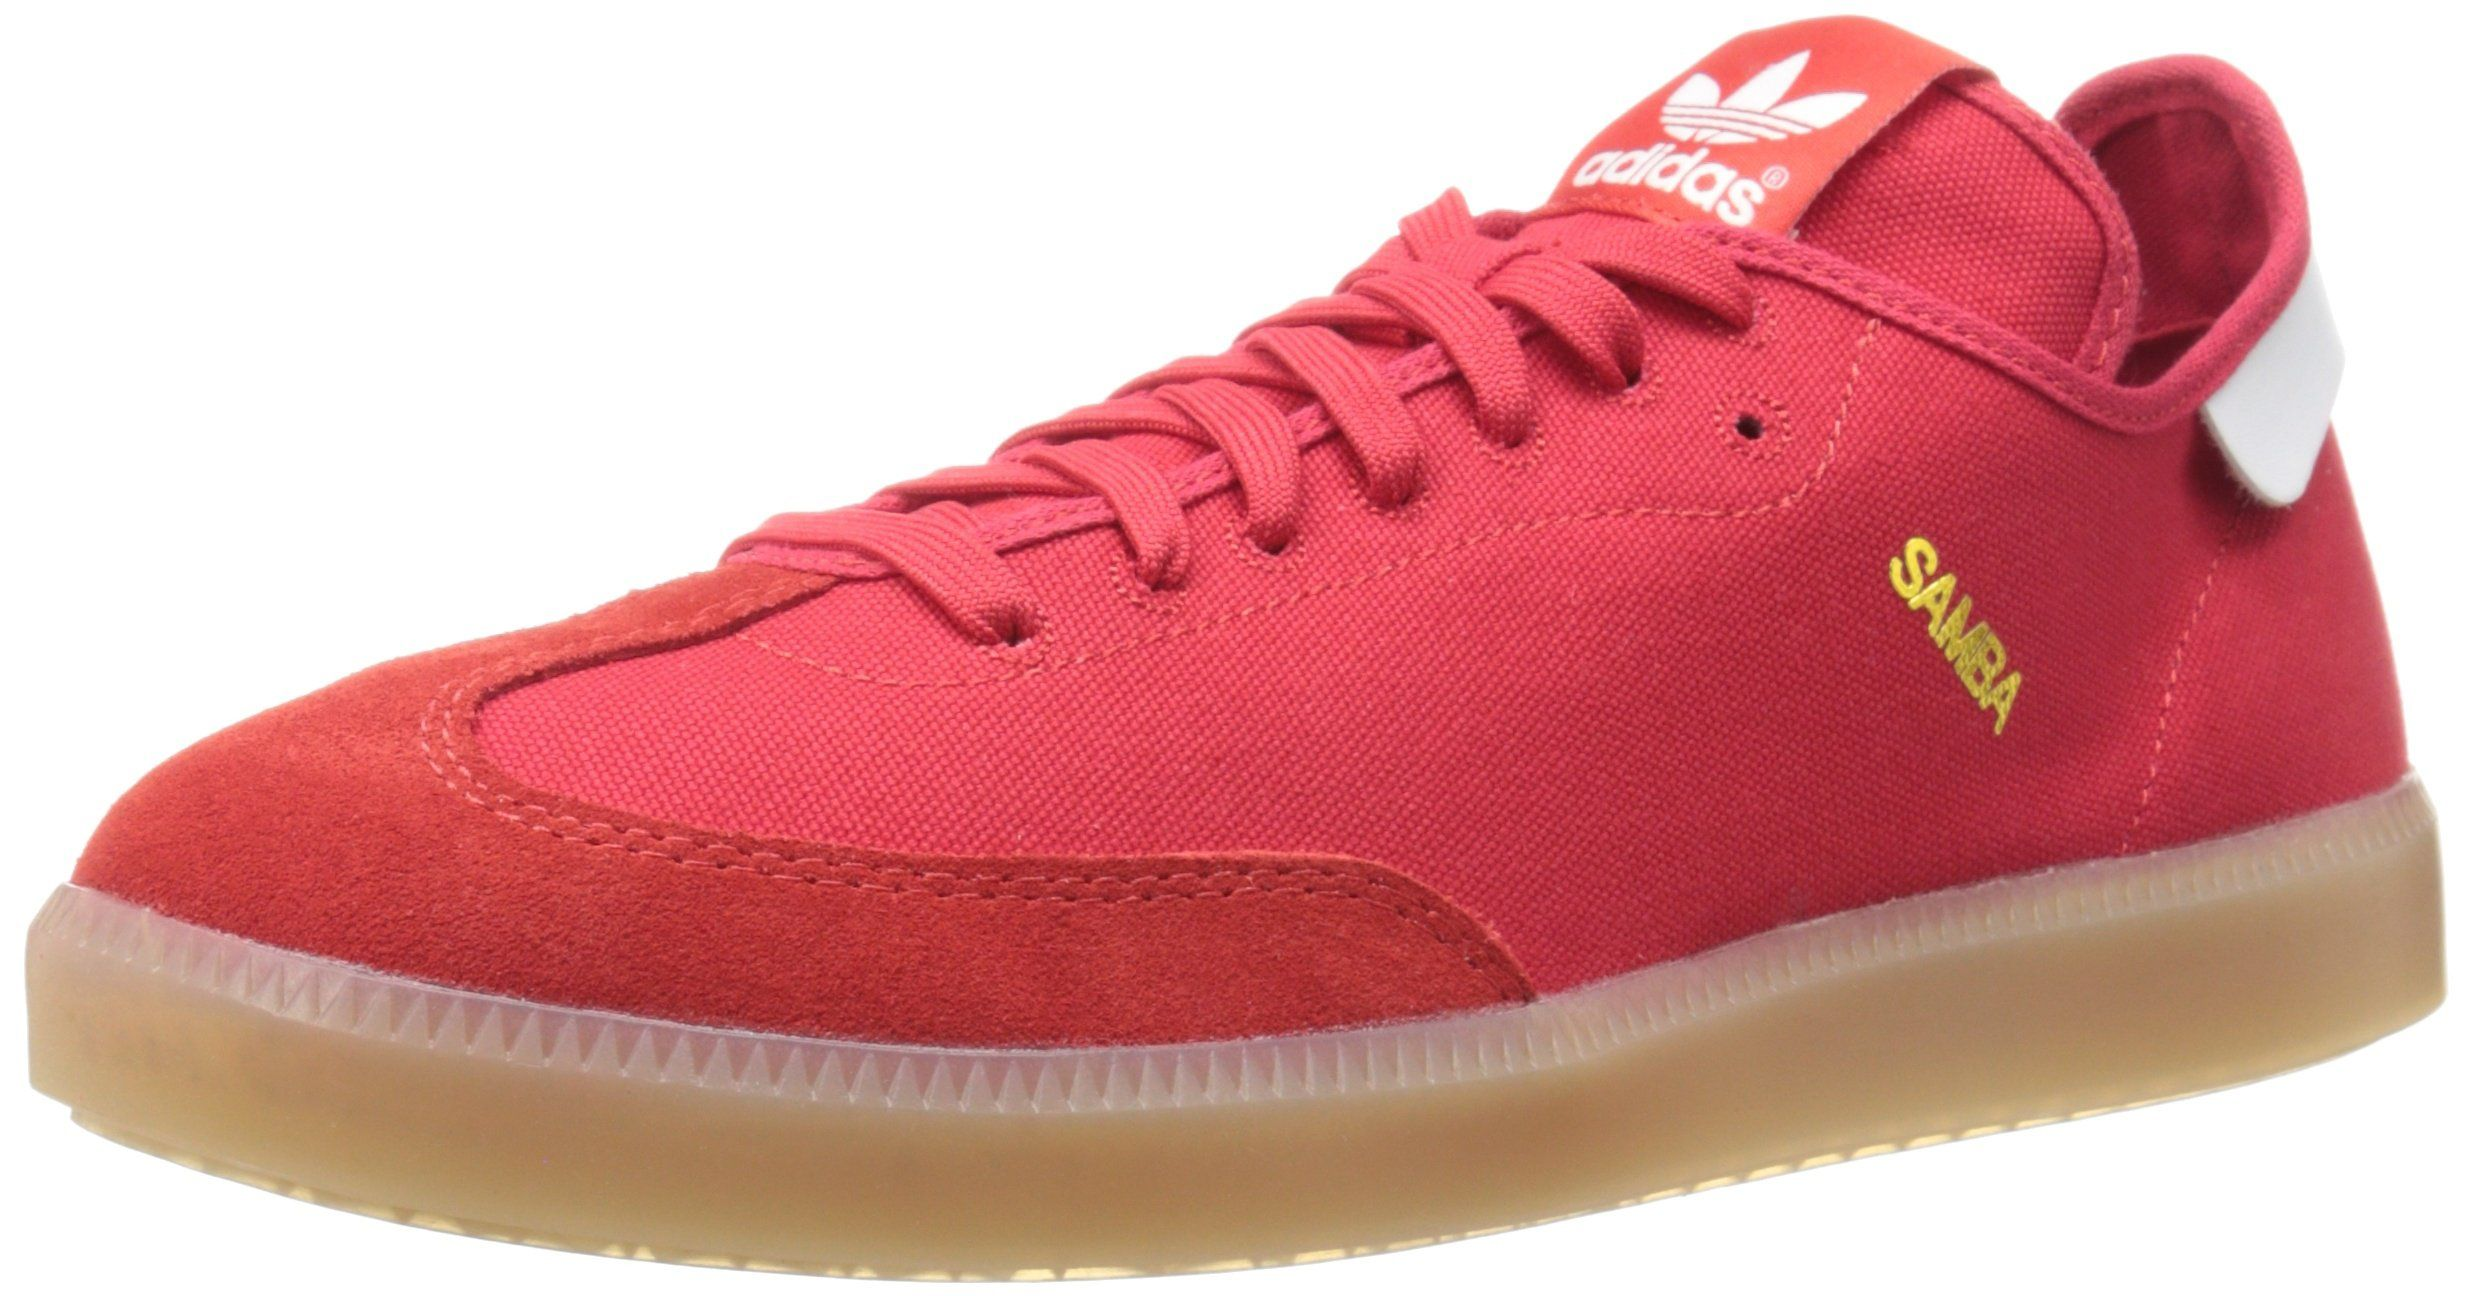 Buy Good Mens Casual Shoes - Adidas Originals Samba Mc Scarlet/White/Gold Metallic